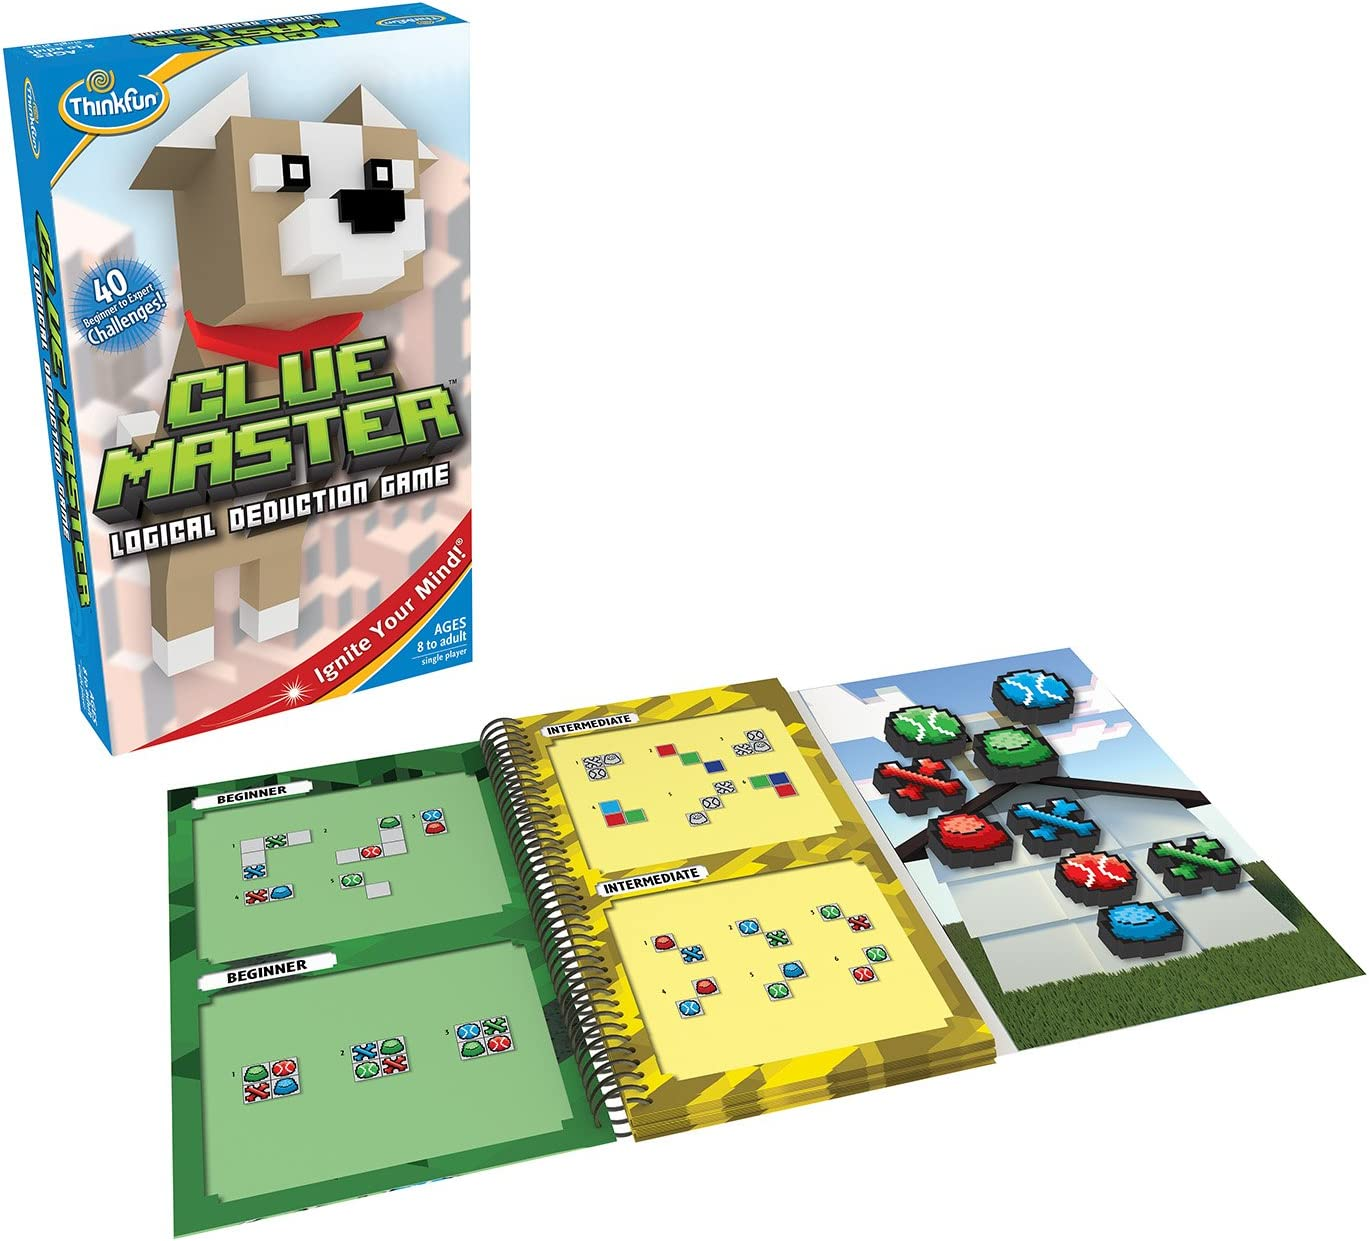 Tons of Fun with Over 20 Awards Won ThinkFun Minecraft Magnetic Travel Puzzle Logic Game /& STEM Toy /& Rush Hour Traffic Jam Brain Game and STEM Toy for Boys and Girls Age 8 and Up